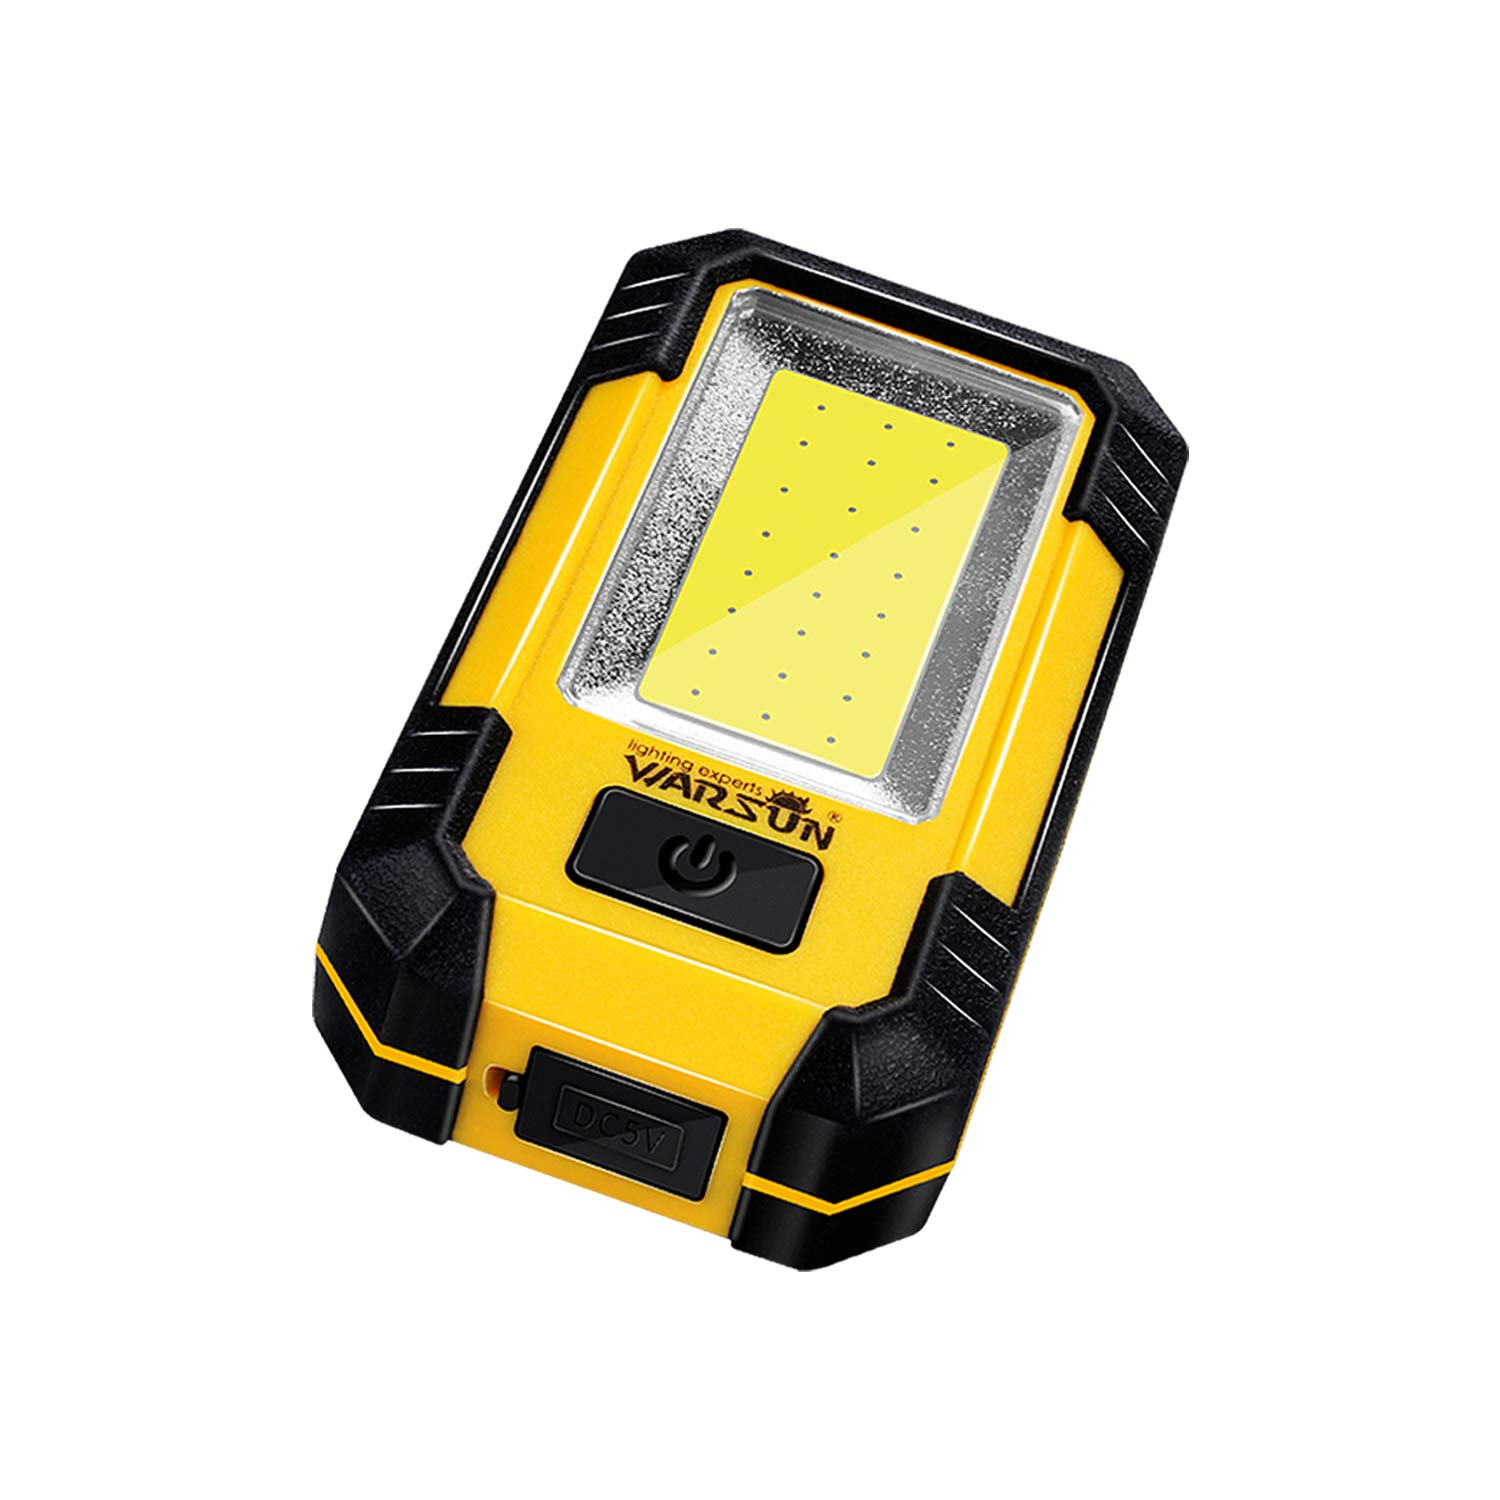 WARSUN Portable LED Rechargeable Work Light